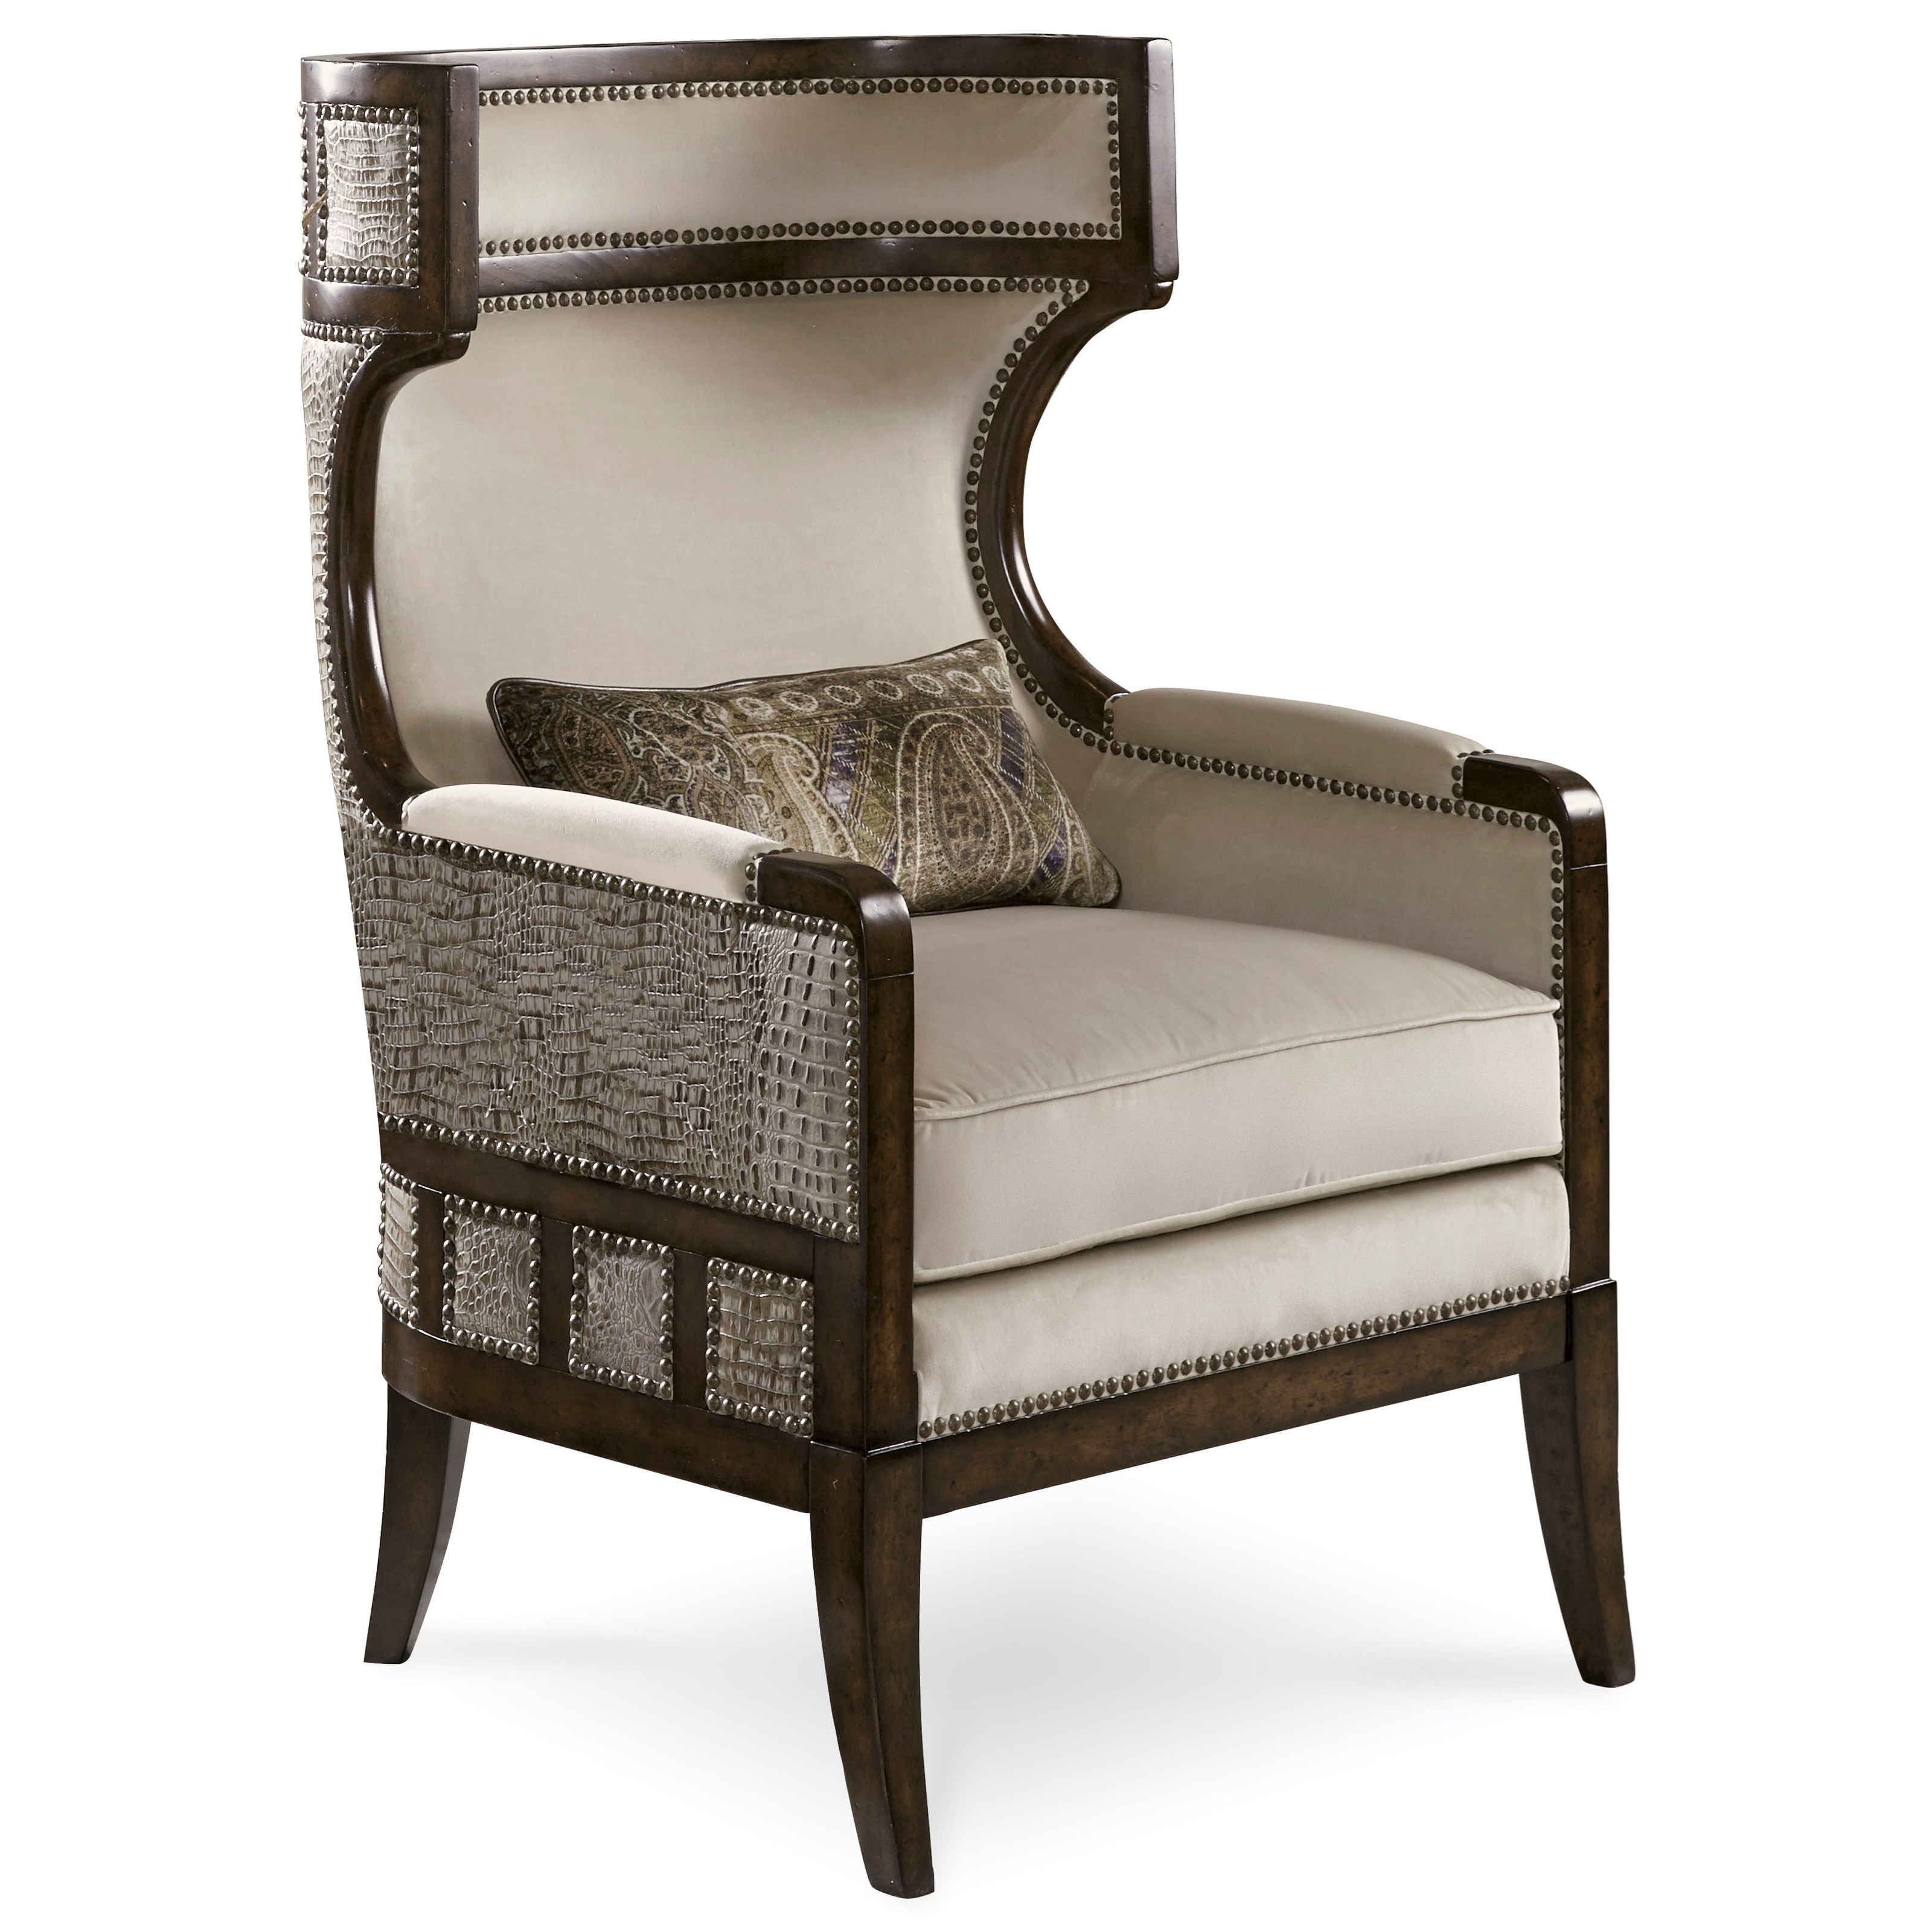 A.R.T. Furniture Inc Palazzo Accent Chair - Item Number: 519574-5001AA